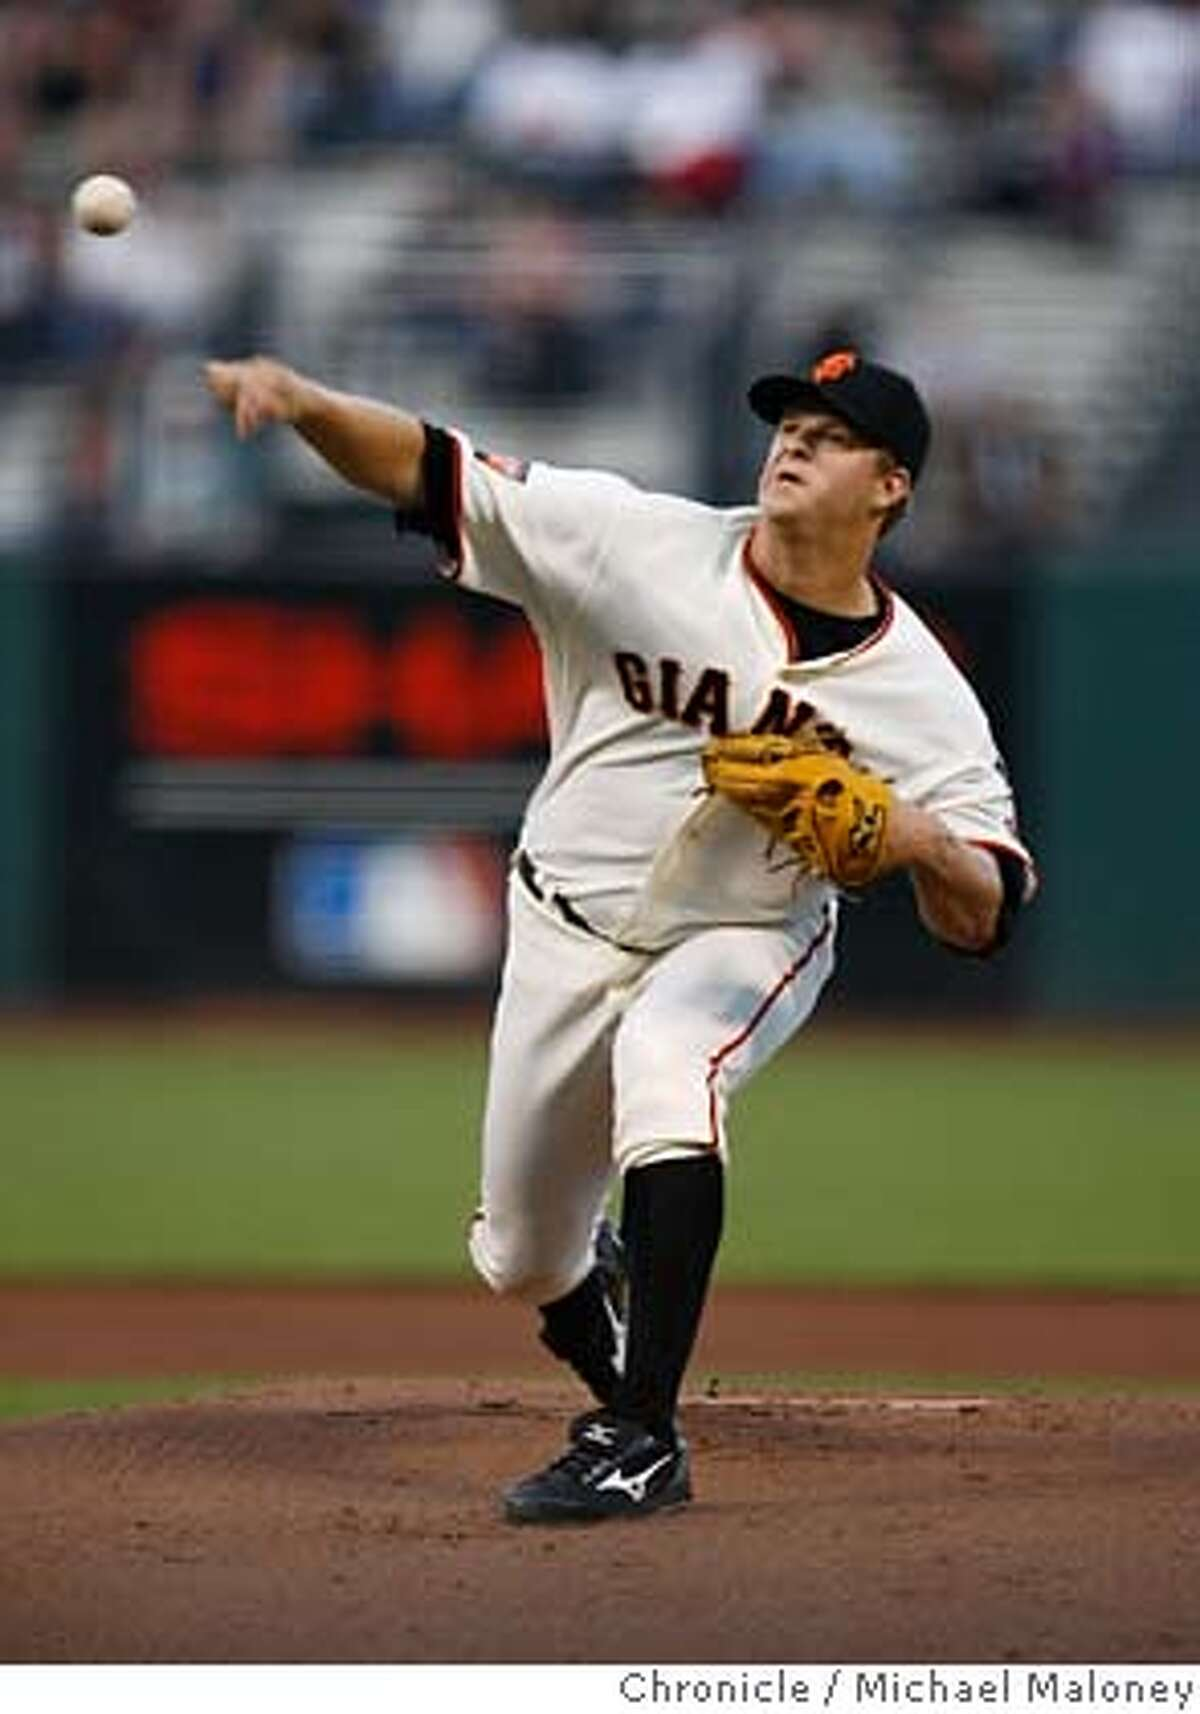 San Francisco Giants starting pitcher Matt Cain. The San Francisco Giants host the Colorado Rockies at AT&T Park. Photo taken on 8/28/07 in San Francisco, CA Photo by Michael Maloney / San Francisco Chronicle Ran on: 08-29-2007 Matt Cain scattered four hits over seven innings, plenty good to earn his fourth win of the month and run his record to 7-13. Ran on: 08-29-2007 Matt Cain scattered four hits over seven innings, plenty good enough to earn his fourth win of the month and run his record to 7-13. MANDATORY CREDIT FOR PHOTOG AND SF CHRONICLE/NO SALES-MAGS OUT